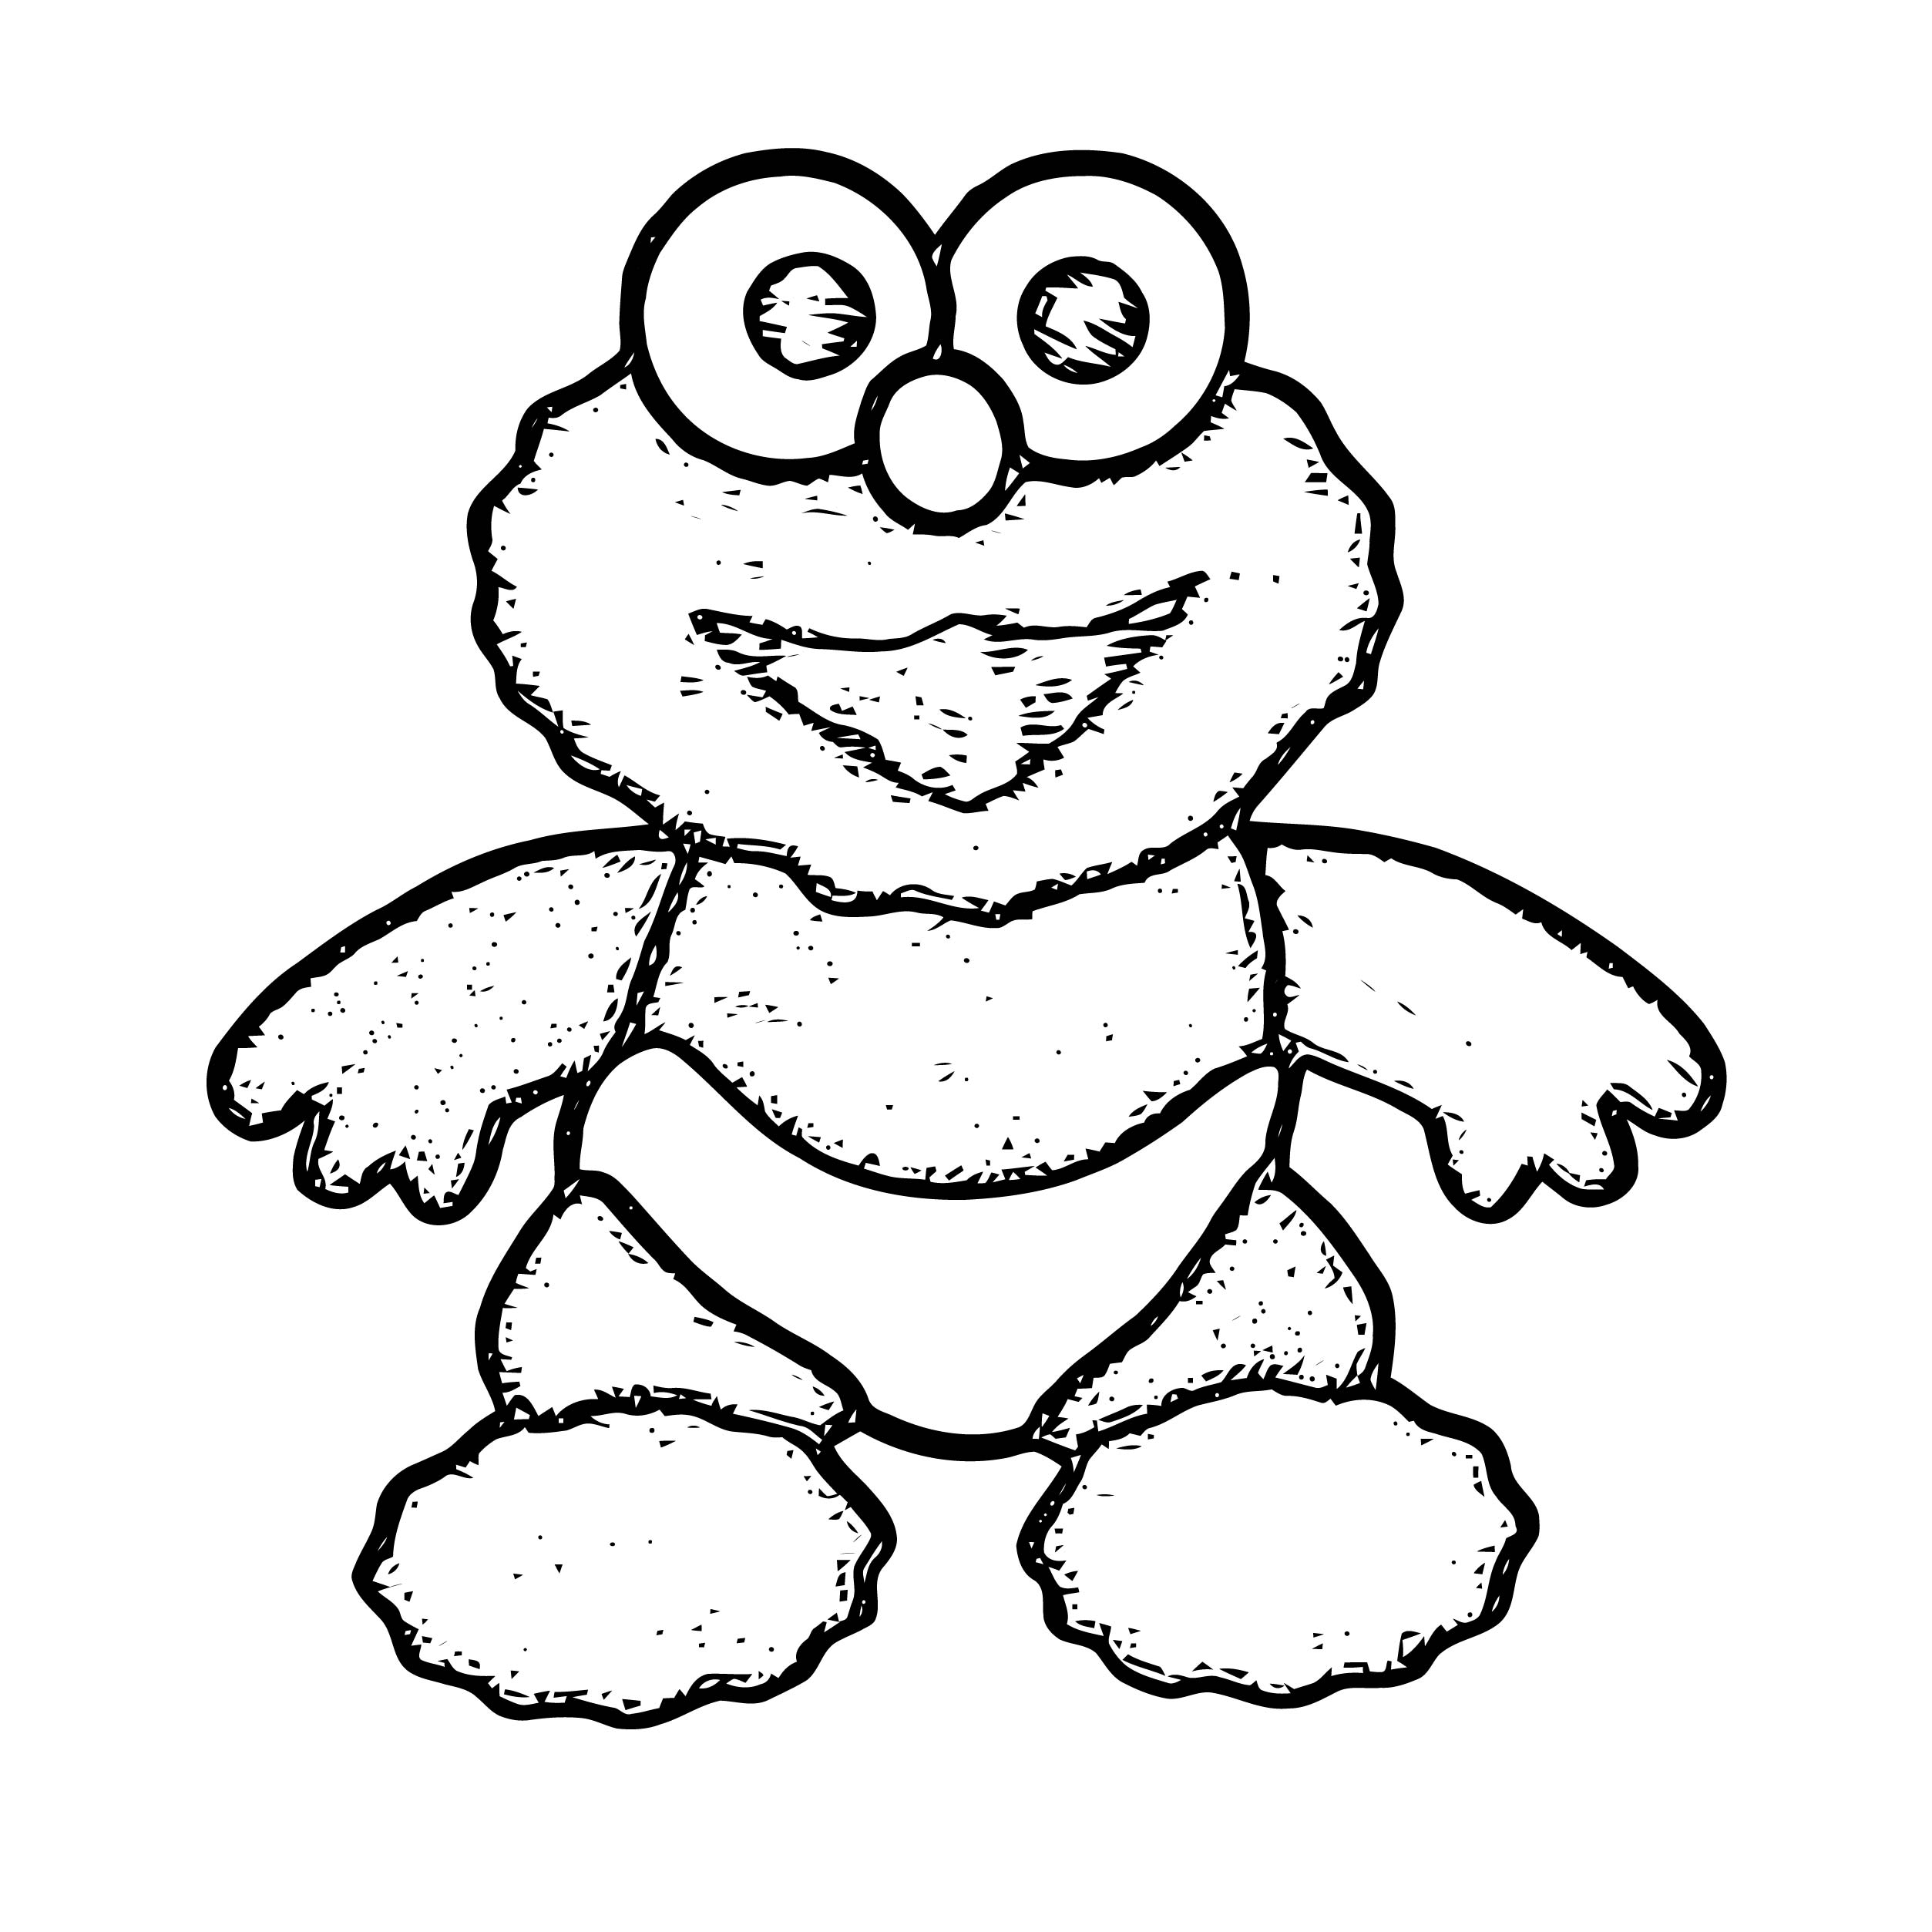 coloring pages of baby elmo | Baby Elmo Coloring Page | Wecoloringpage.com